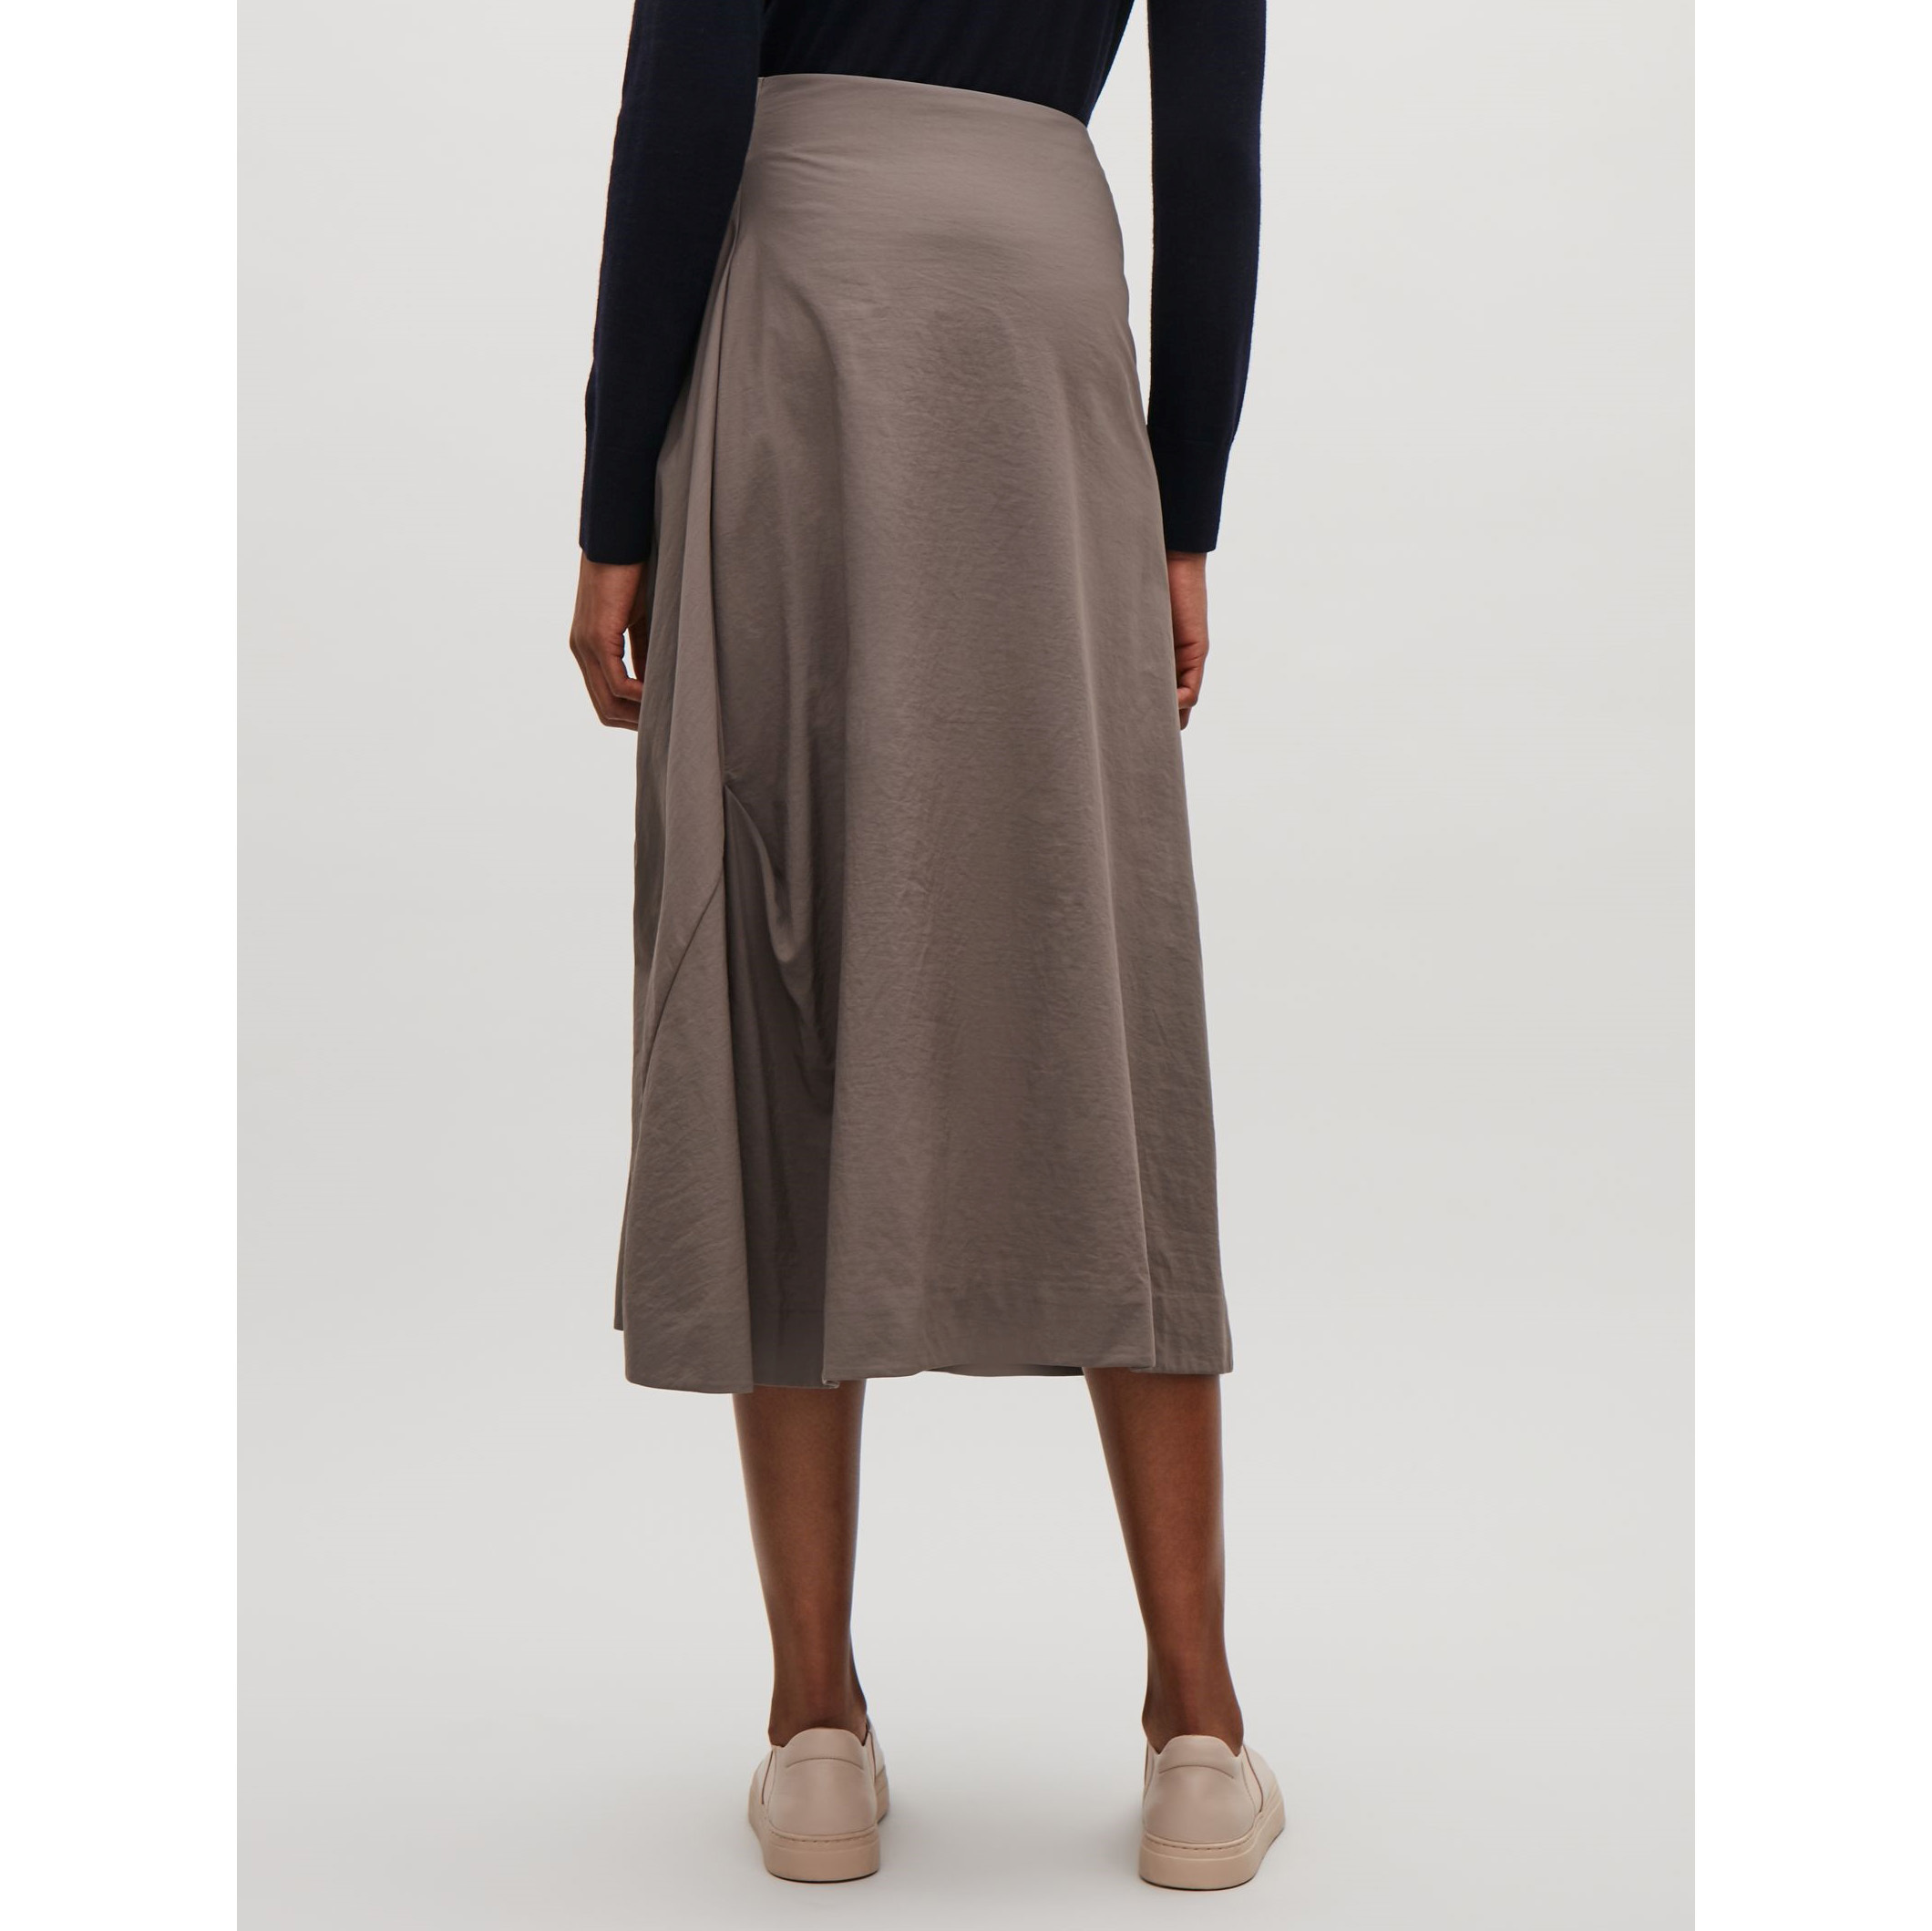 COS☆TECHNICAL A-LINE SKIRT / taupe